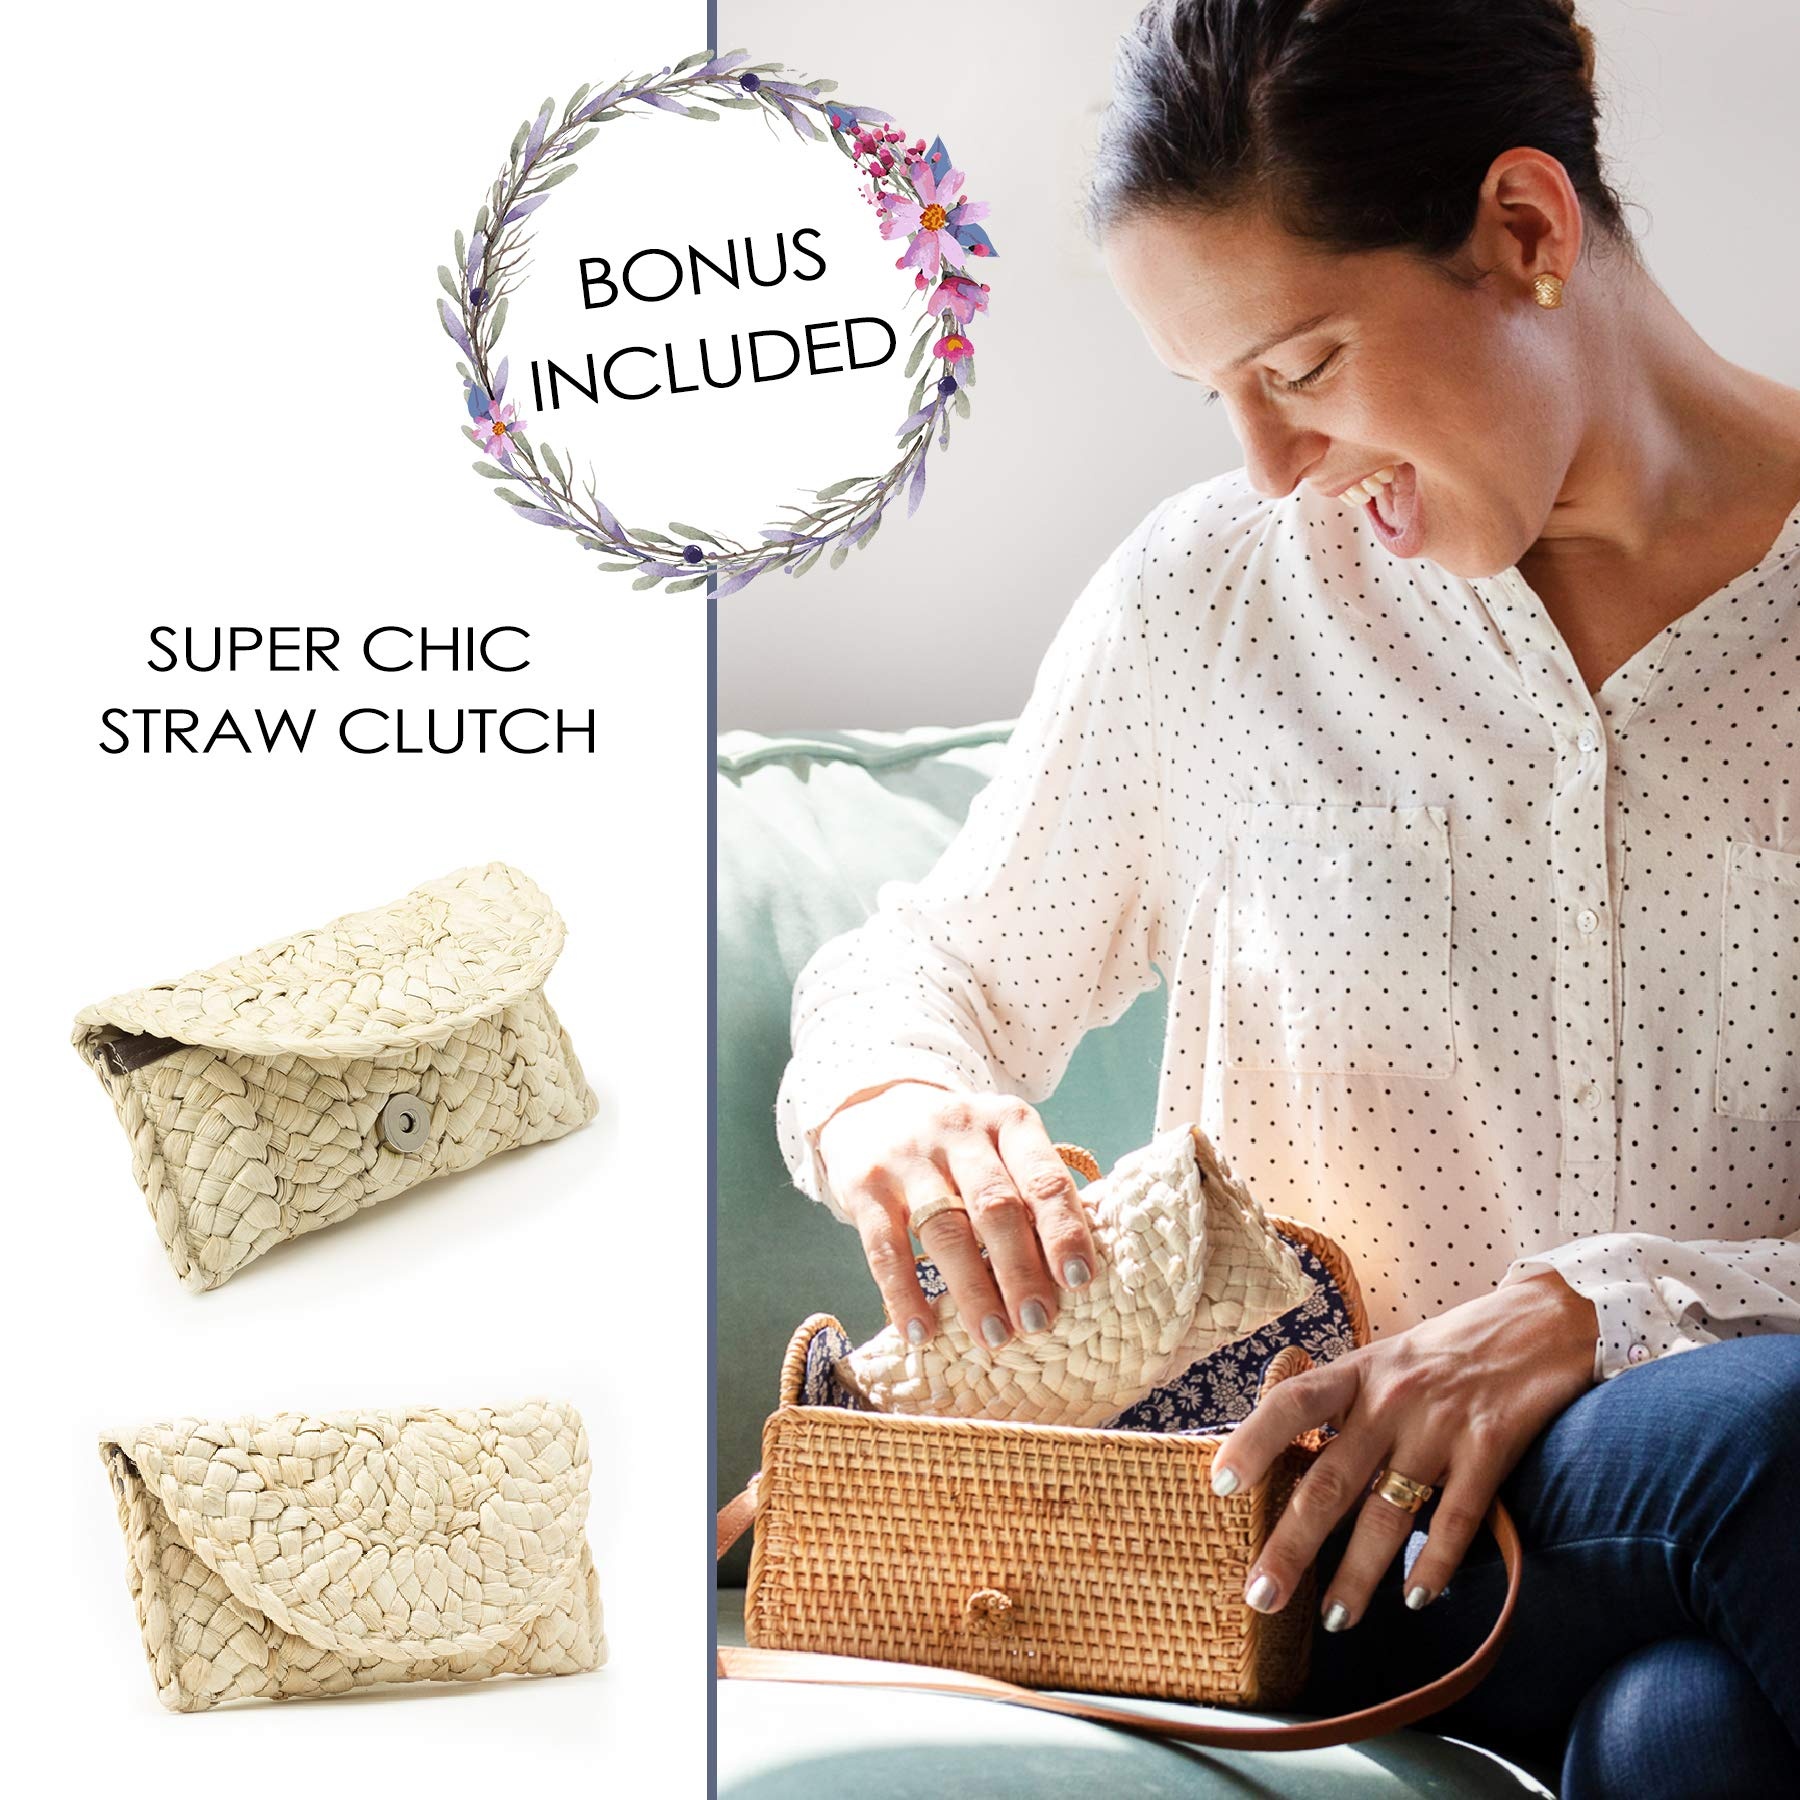 Romi Rattan Bags for Women - Handmade Wicker Woven Crossbody Purse Handbag Boho Handmade Rattan Bag with Removable Strap & Handbag Strap & FREE Straw Rattan Clutch Gift